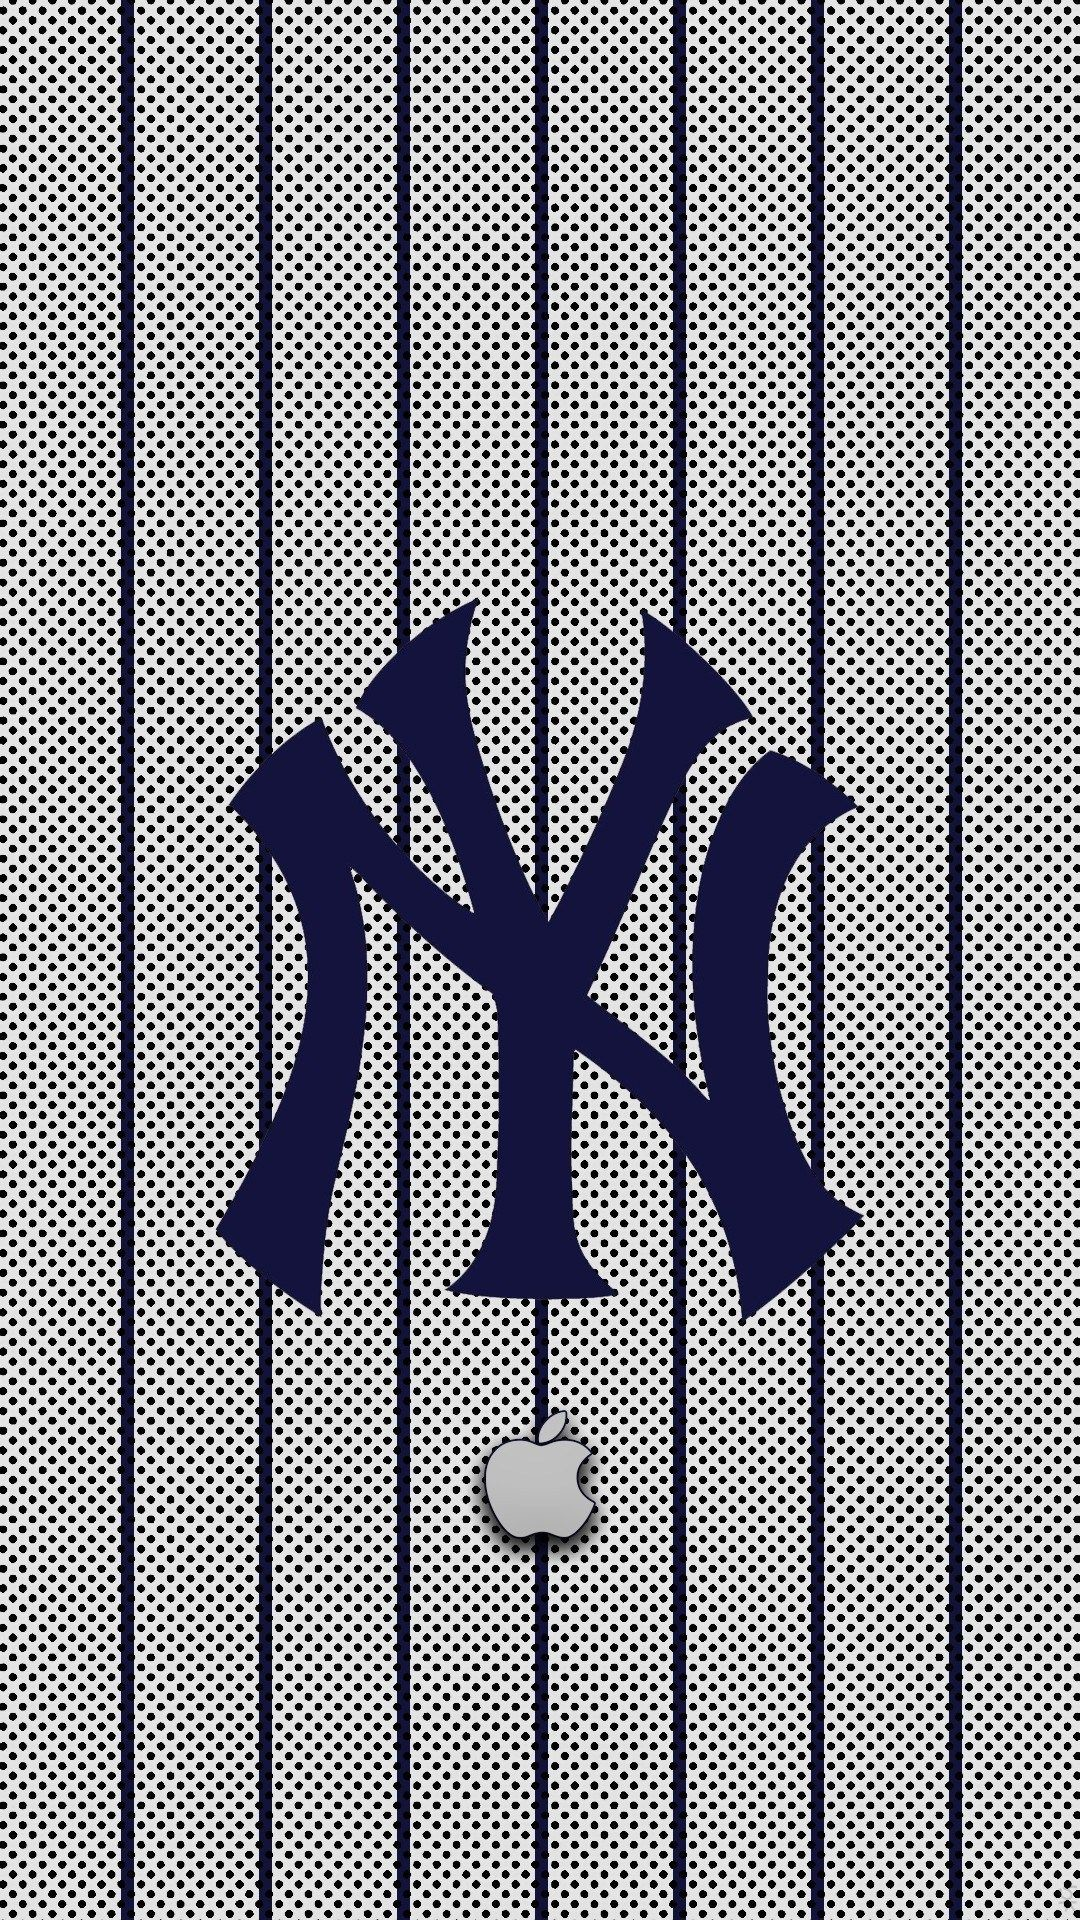 1080x1920, Iphone 6 7 Plus Wallpaper Request Thread - We Love The Yankees - HD Wallpaper